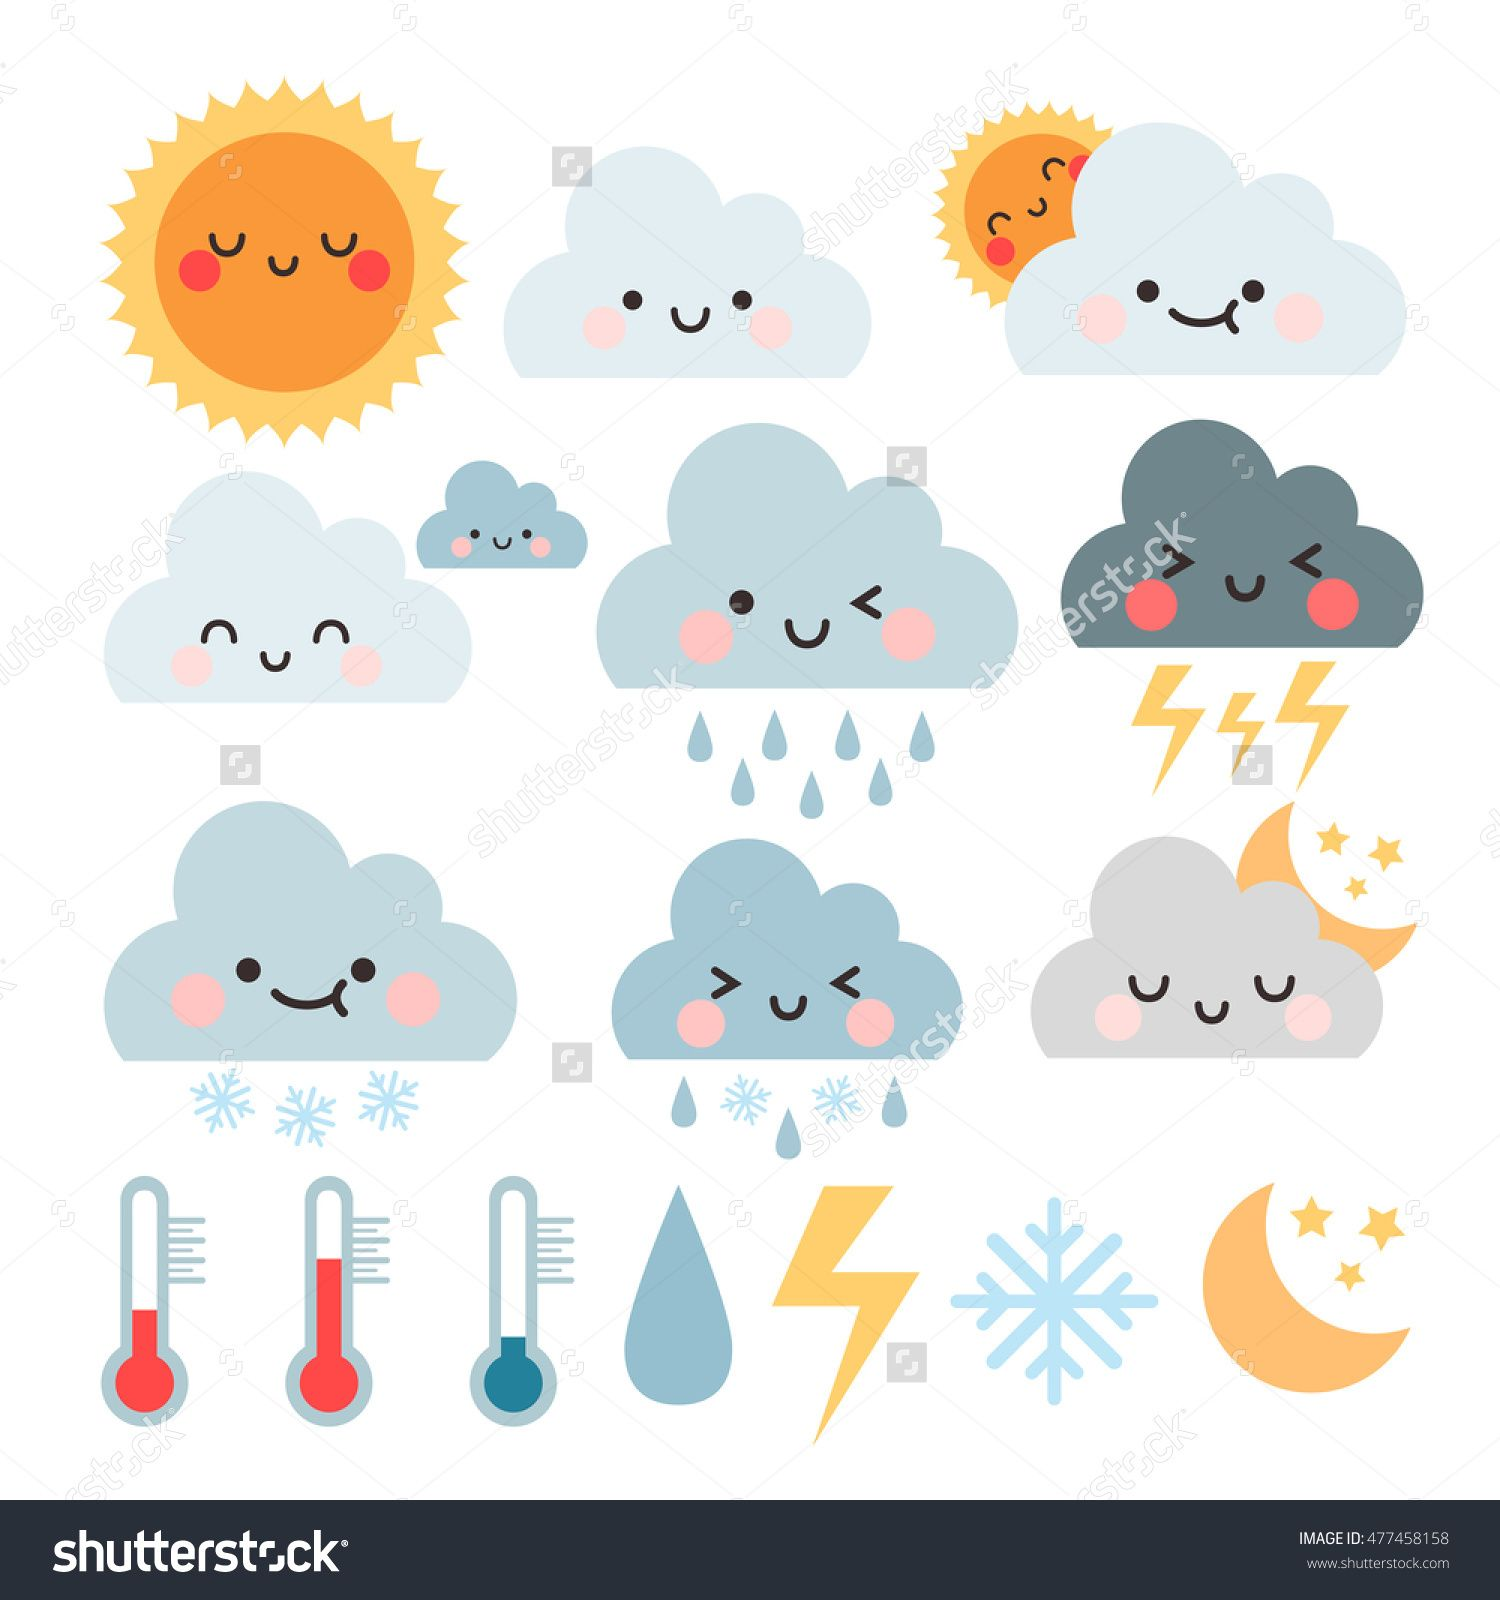 cute cartoon set with weather icons. cute weather icons